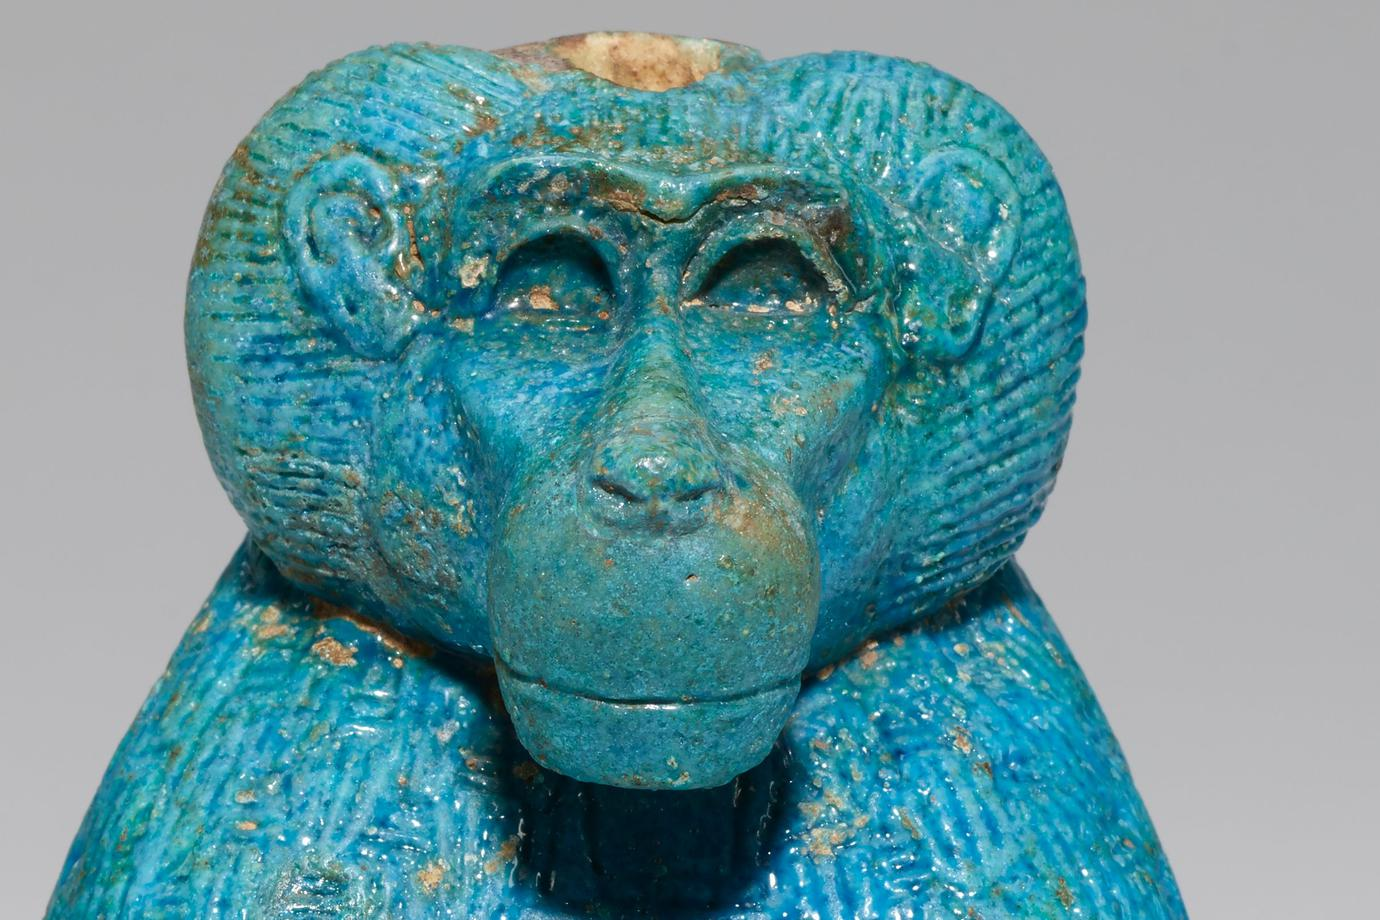 seated male baboon with its front paws on its knees and its tail wrapped along the PR side of its body; turquoise blue